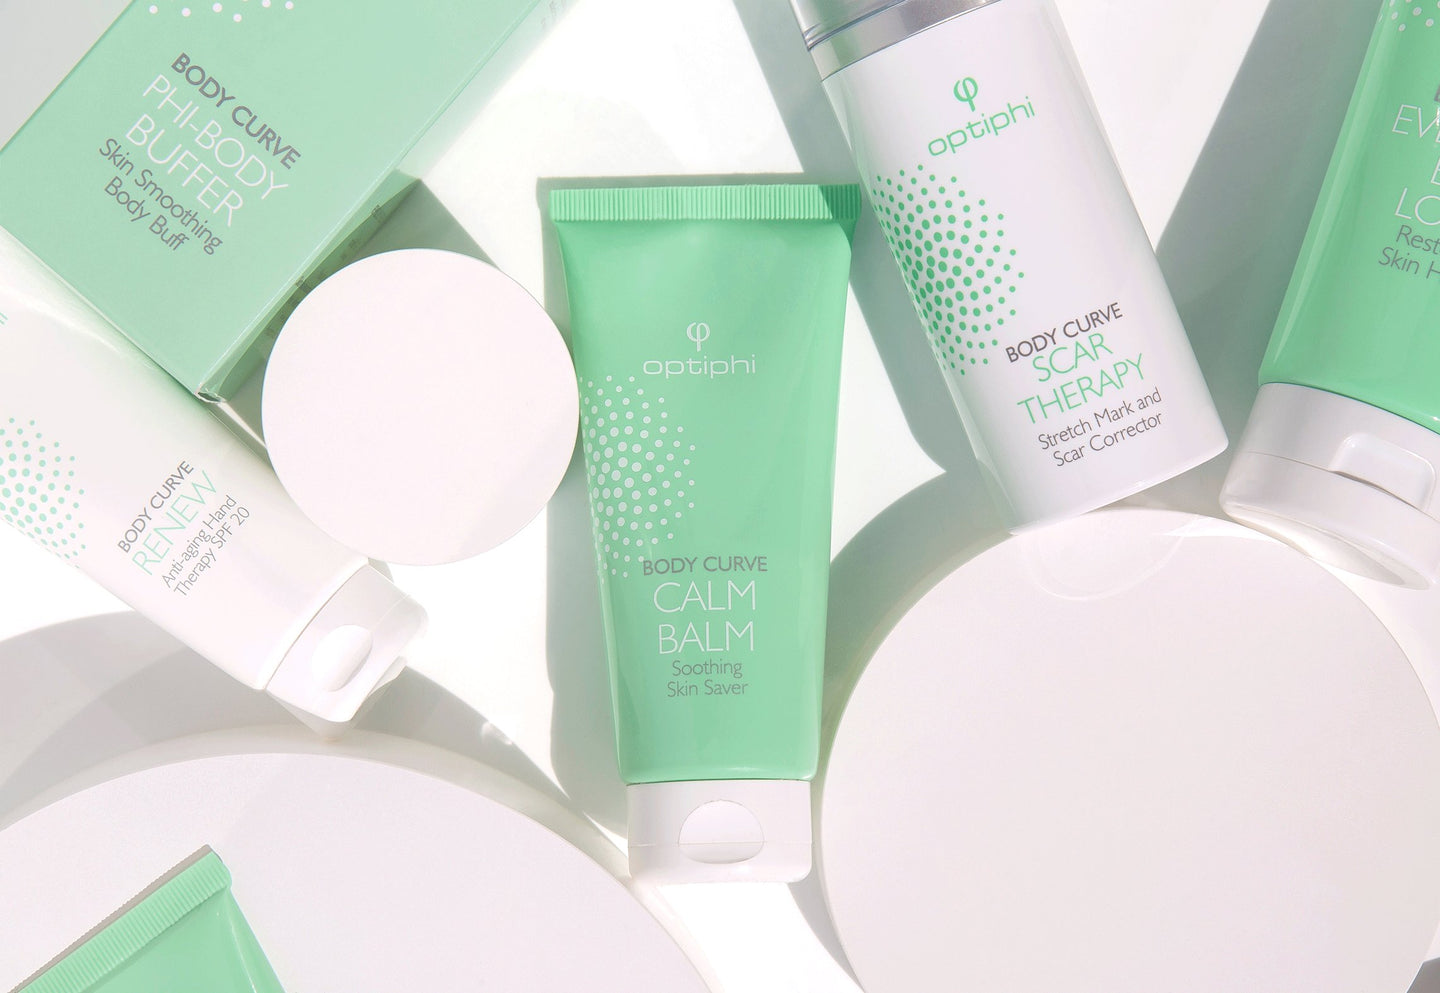 Advanced body products, addressing aging on the body, loss of skin density, tone, wrinkles, pigmentation and sun damage.